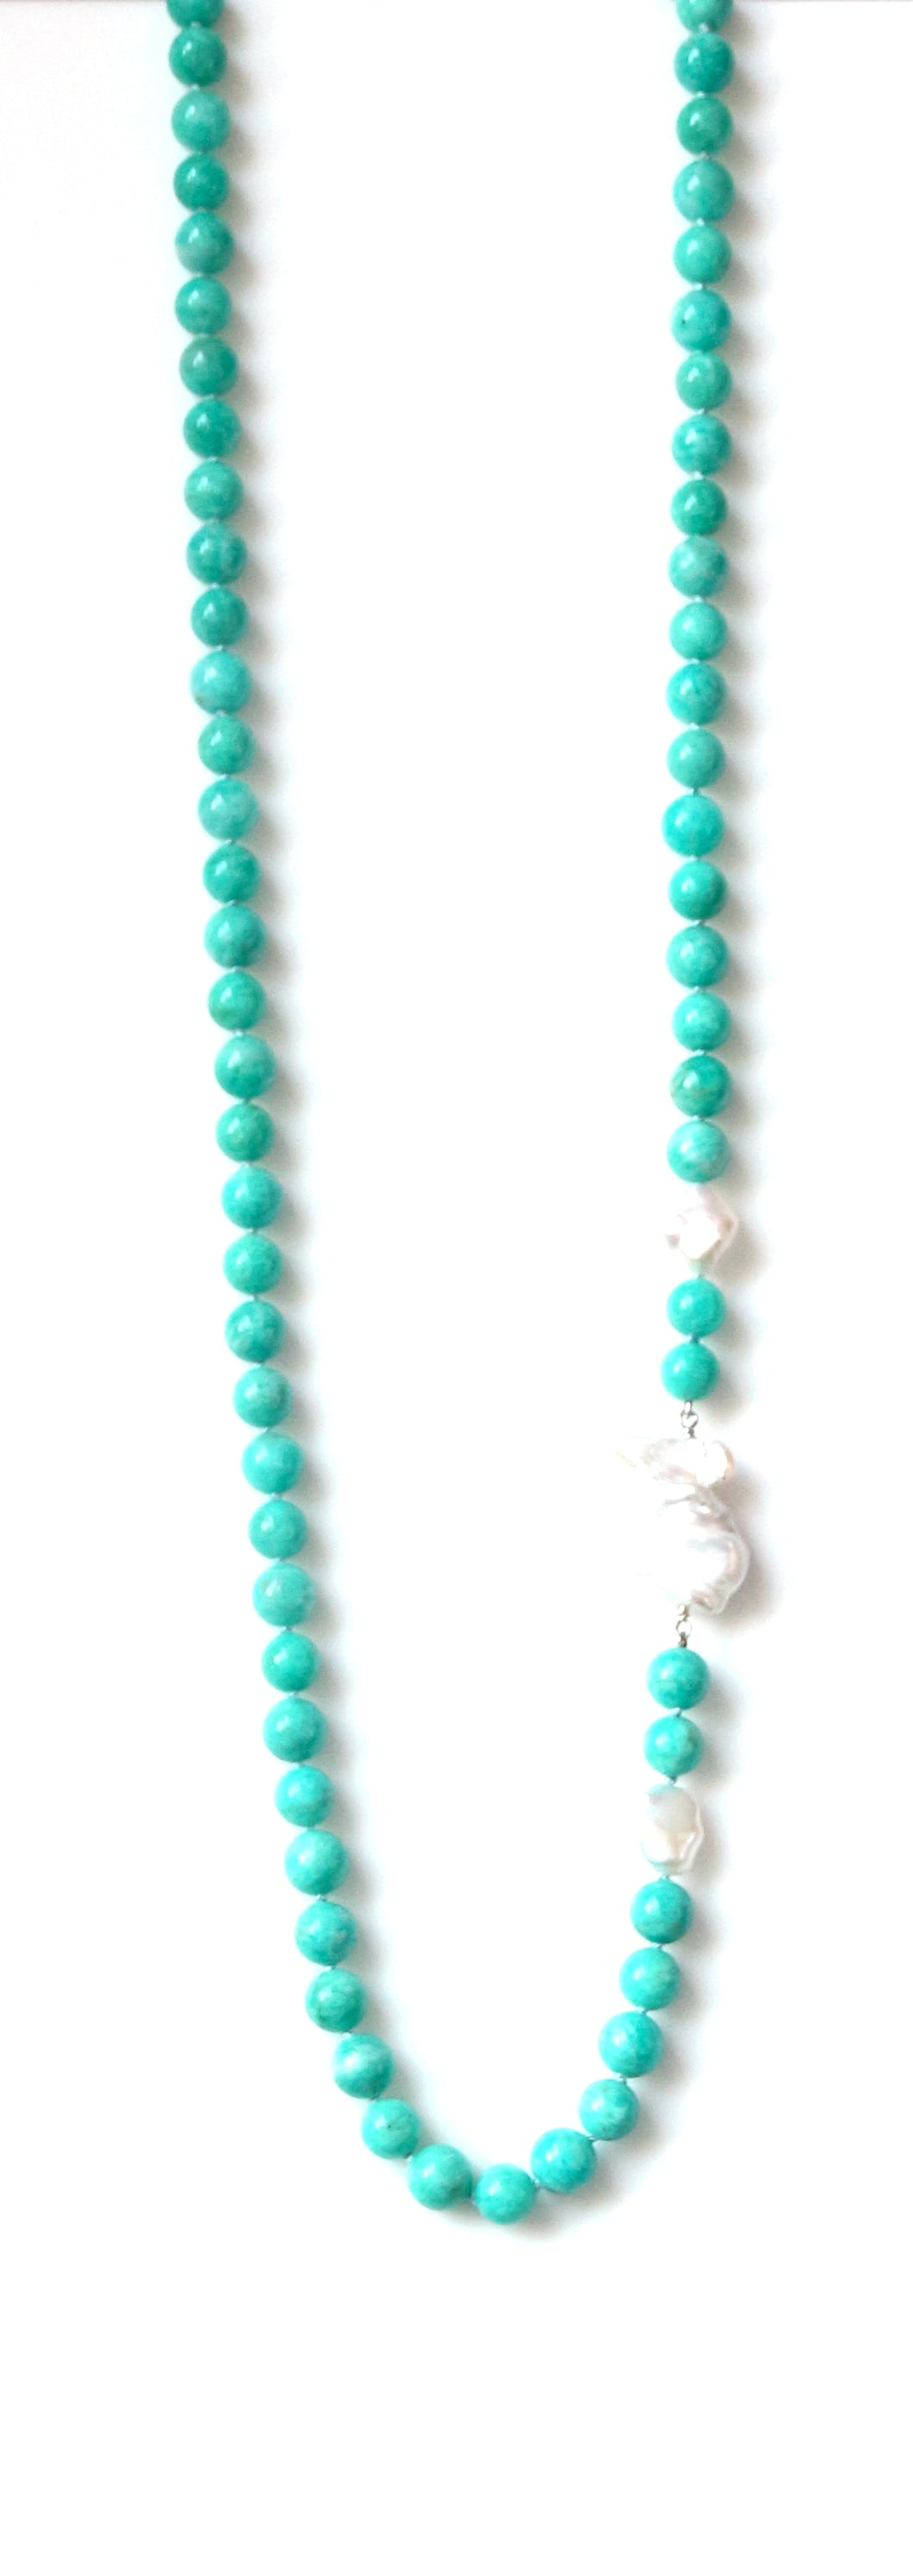 Australian Handmade Long Necklace with Peruvian Amazonite and Baroque Pearl